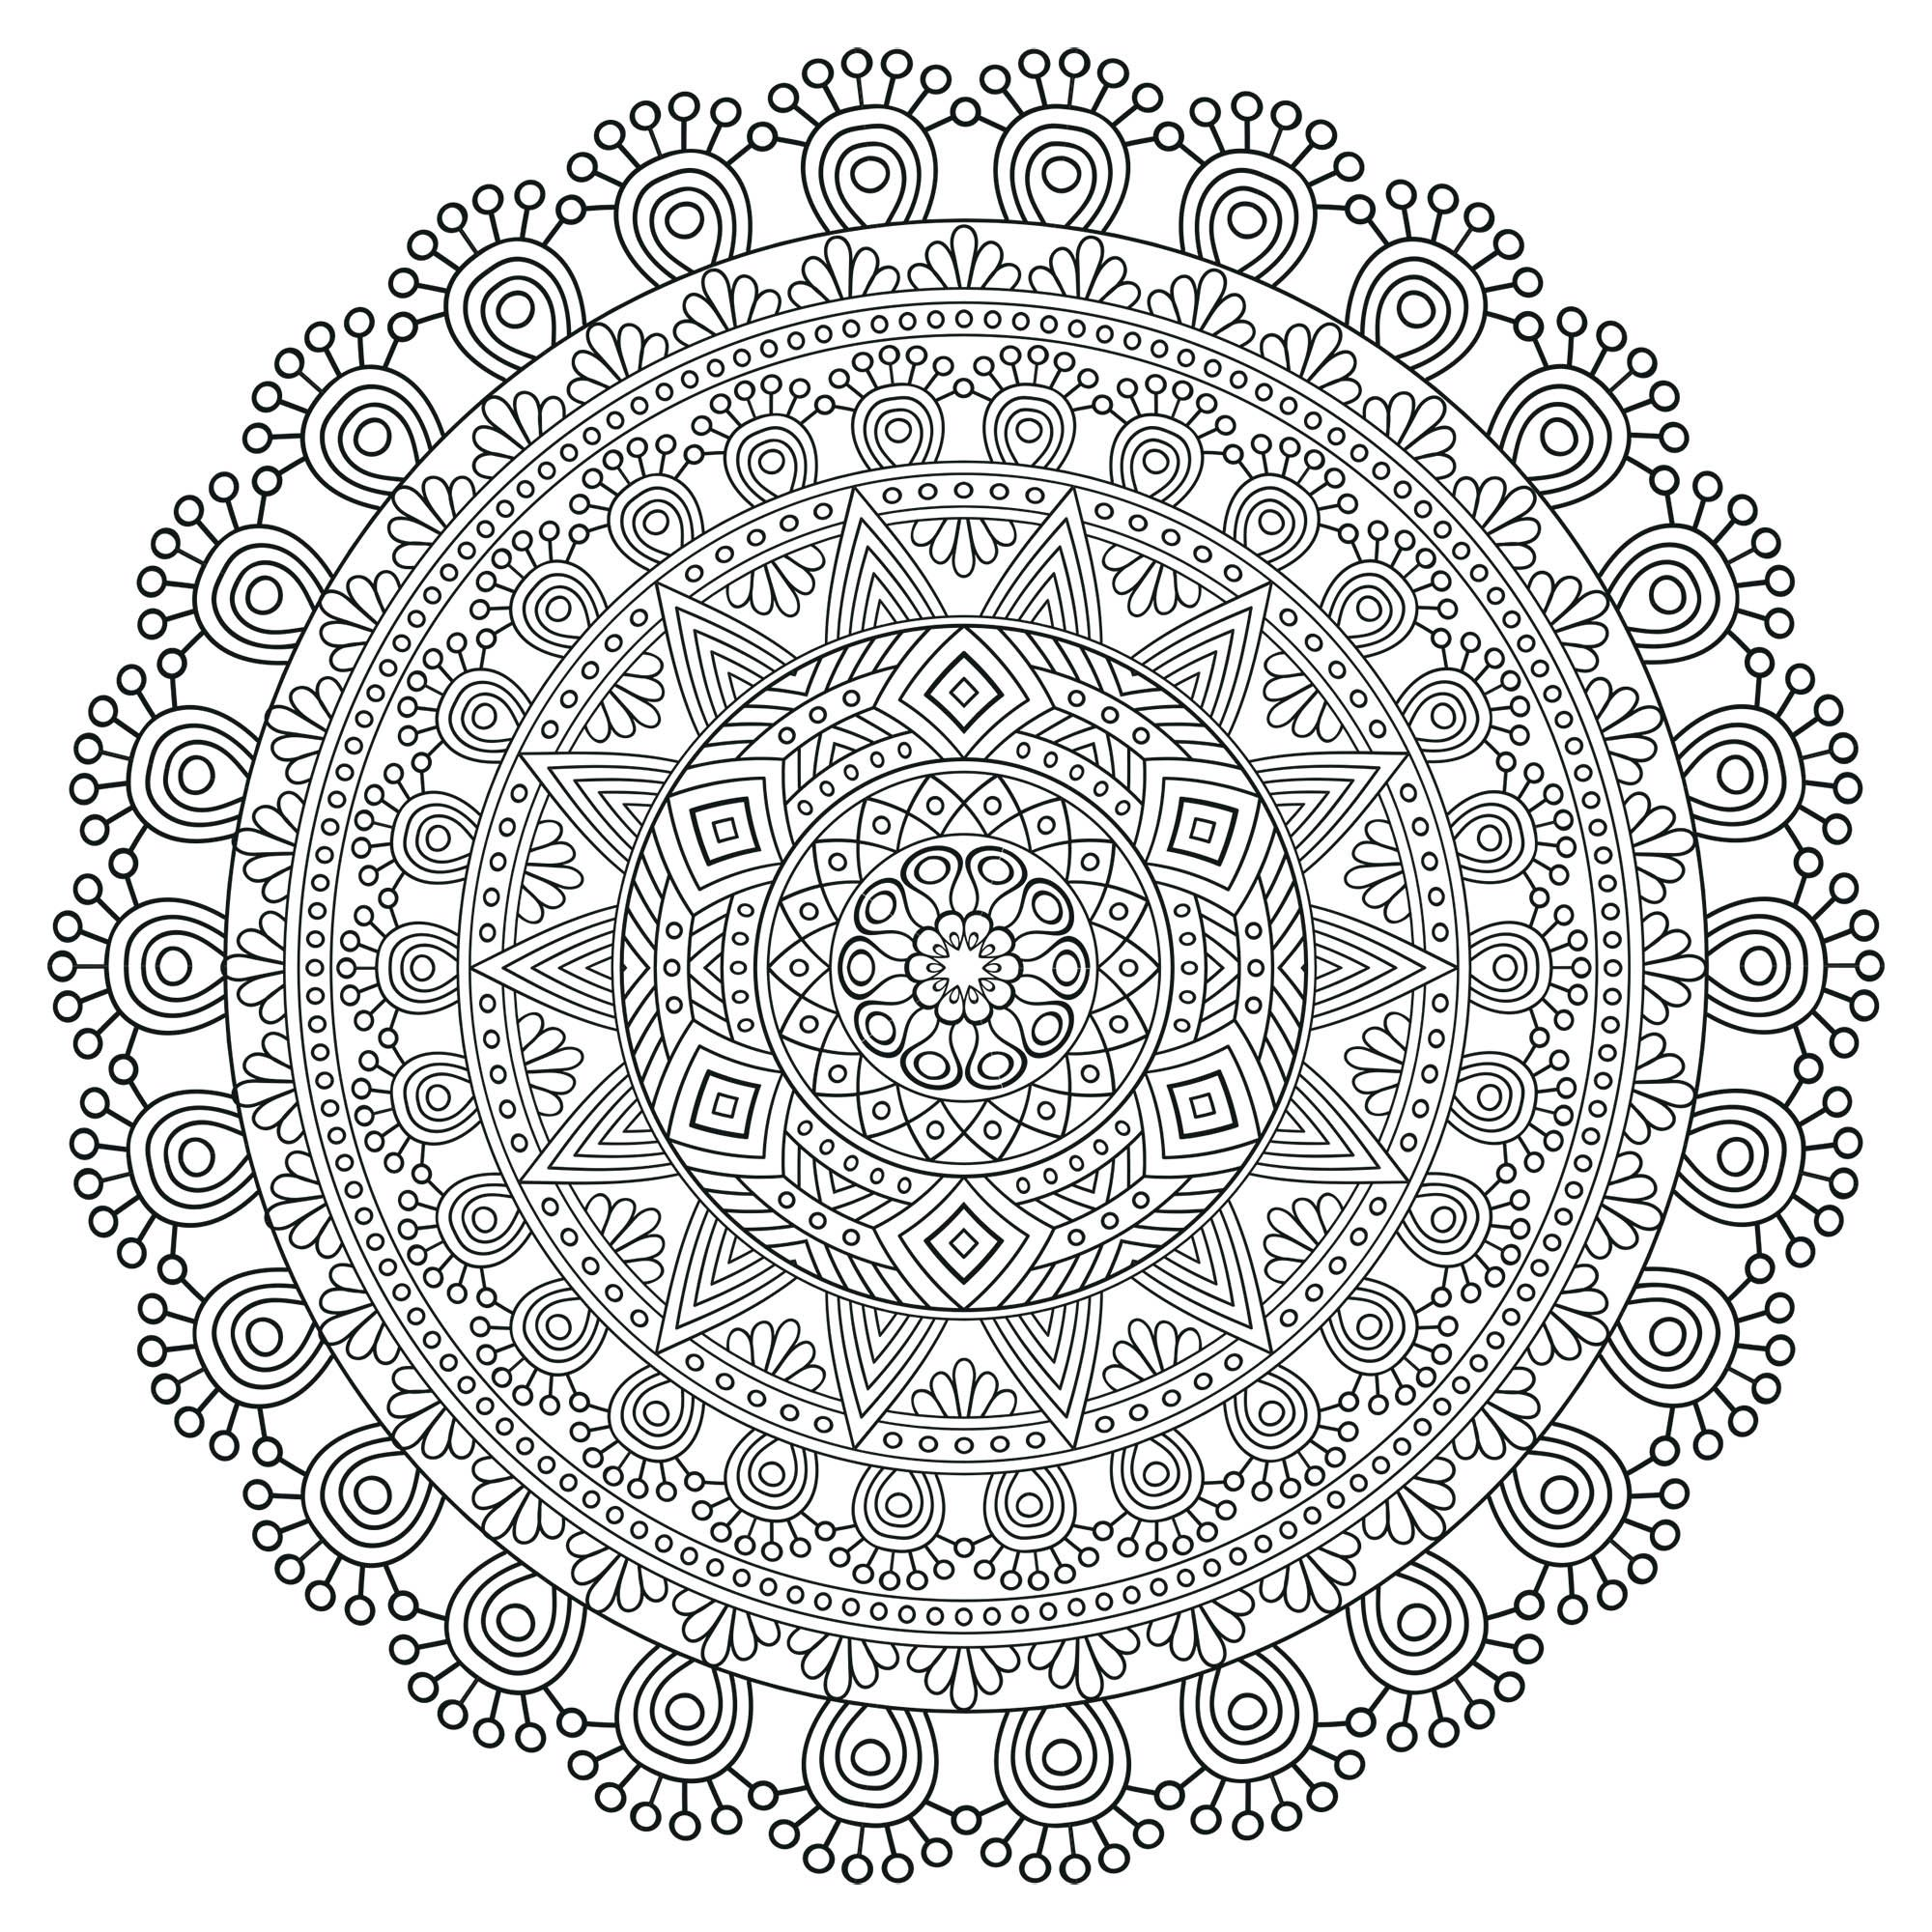 Zen Anti Stress Mandala 5 From The Gallery Mandalas Mandala Coloring Mandala Coloring Pages Pattern Coloring Pages